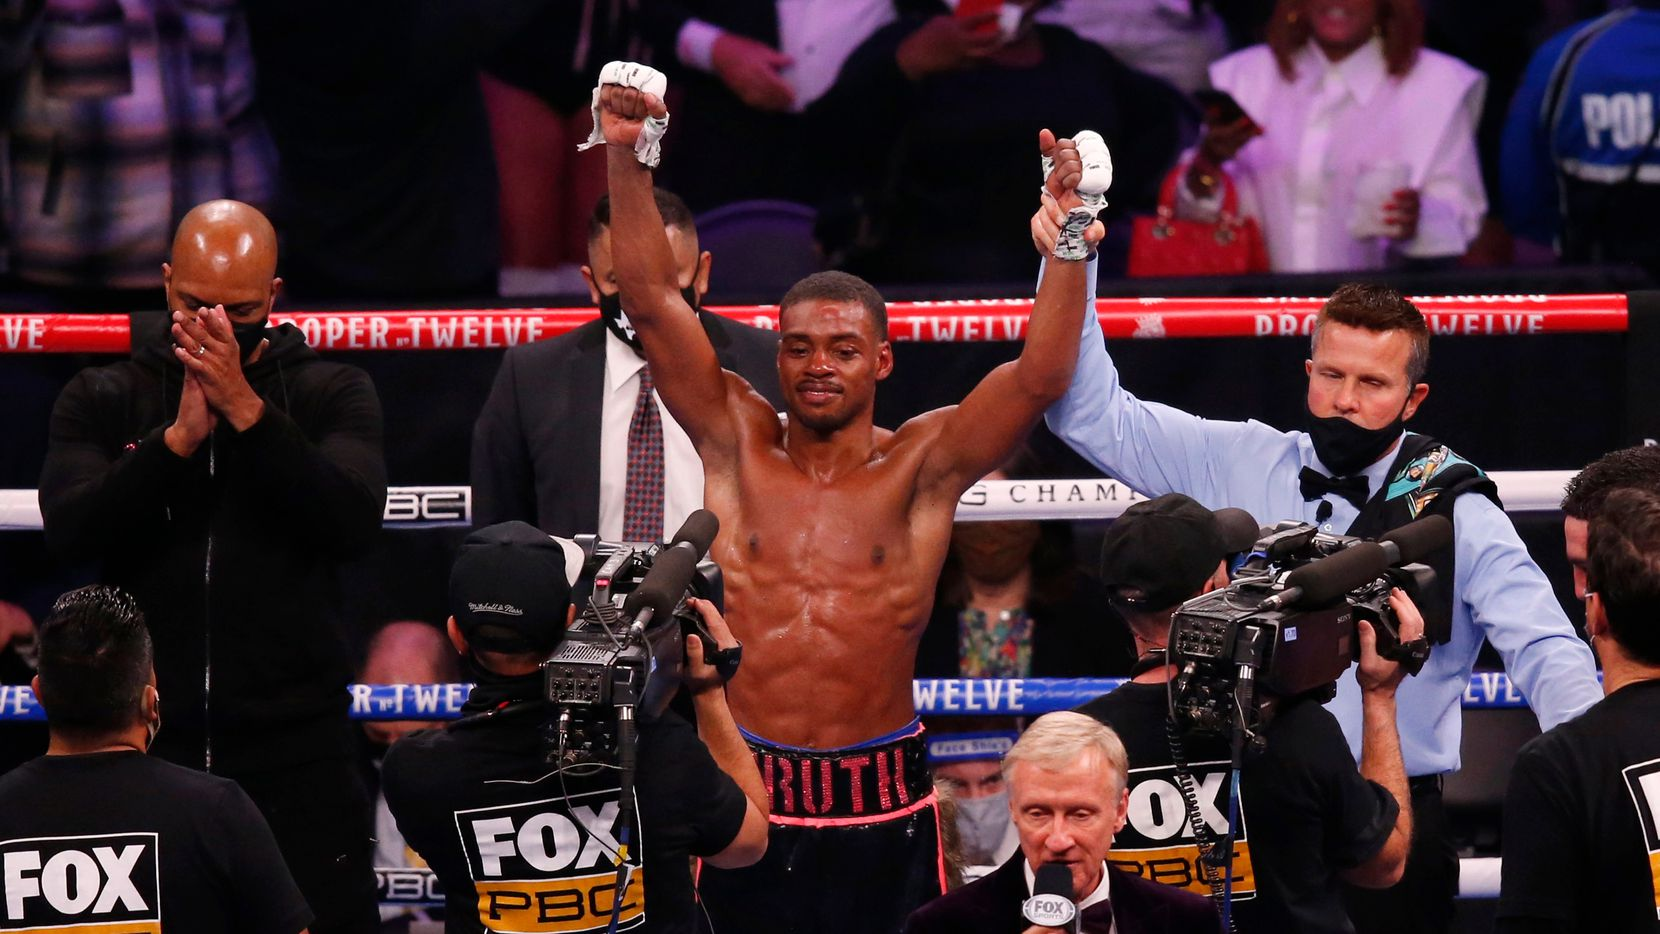 Errol Spence, Jr. is named the winner against Danny García in a WBC & IBF World Welterweight Championship boxing match at AT&T Stadium on Saturday, December 5, 2020 in Arlington, Texas. Spence Jr. won by unanimous decision in 12 rounds.